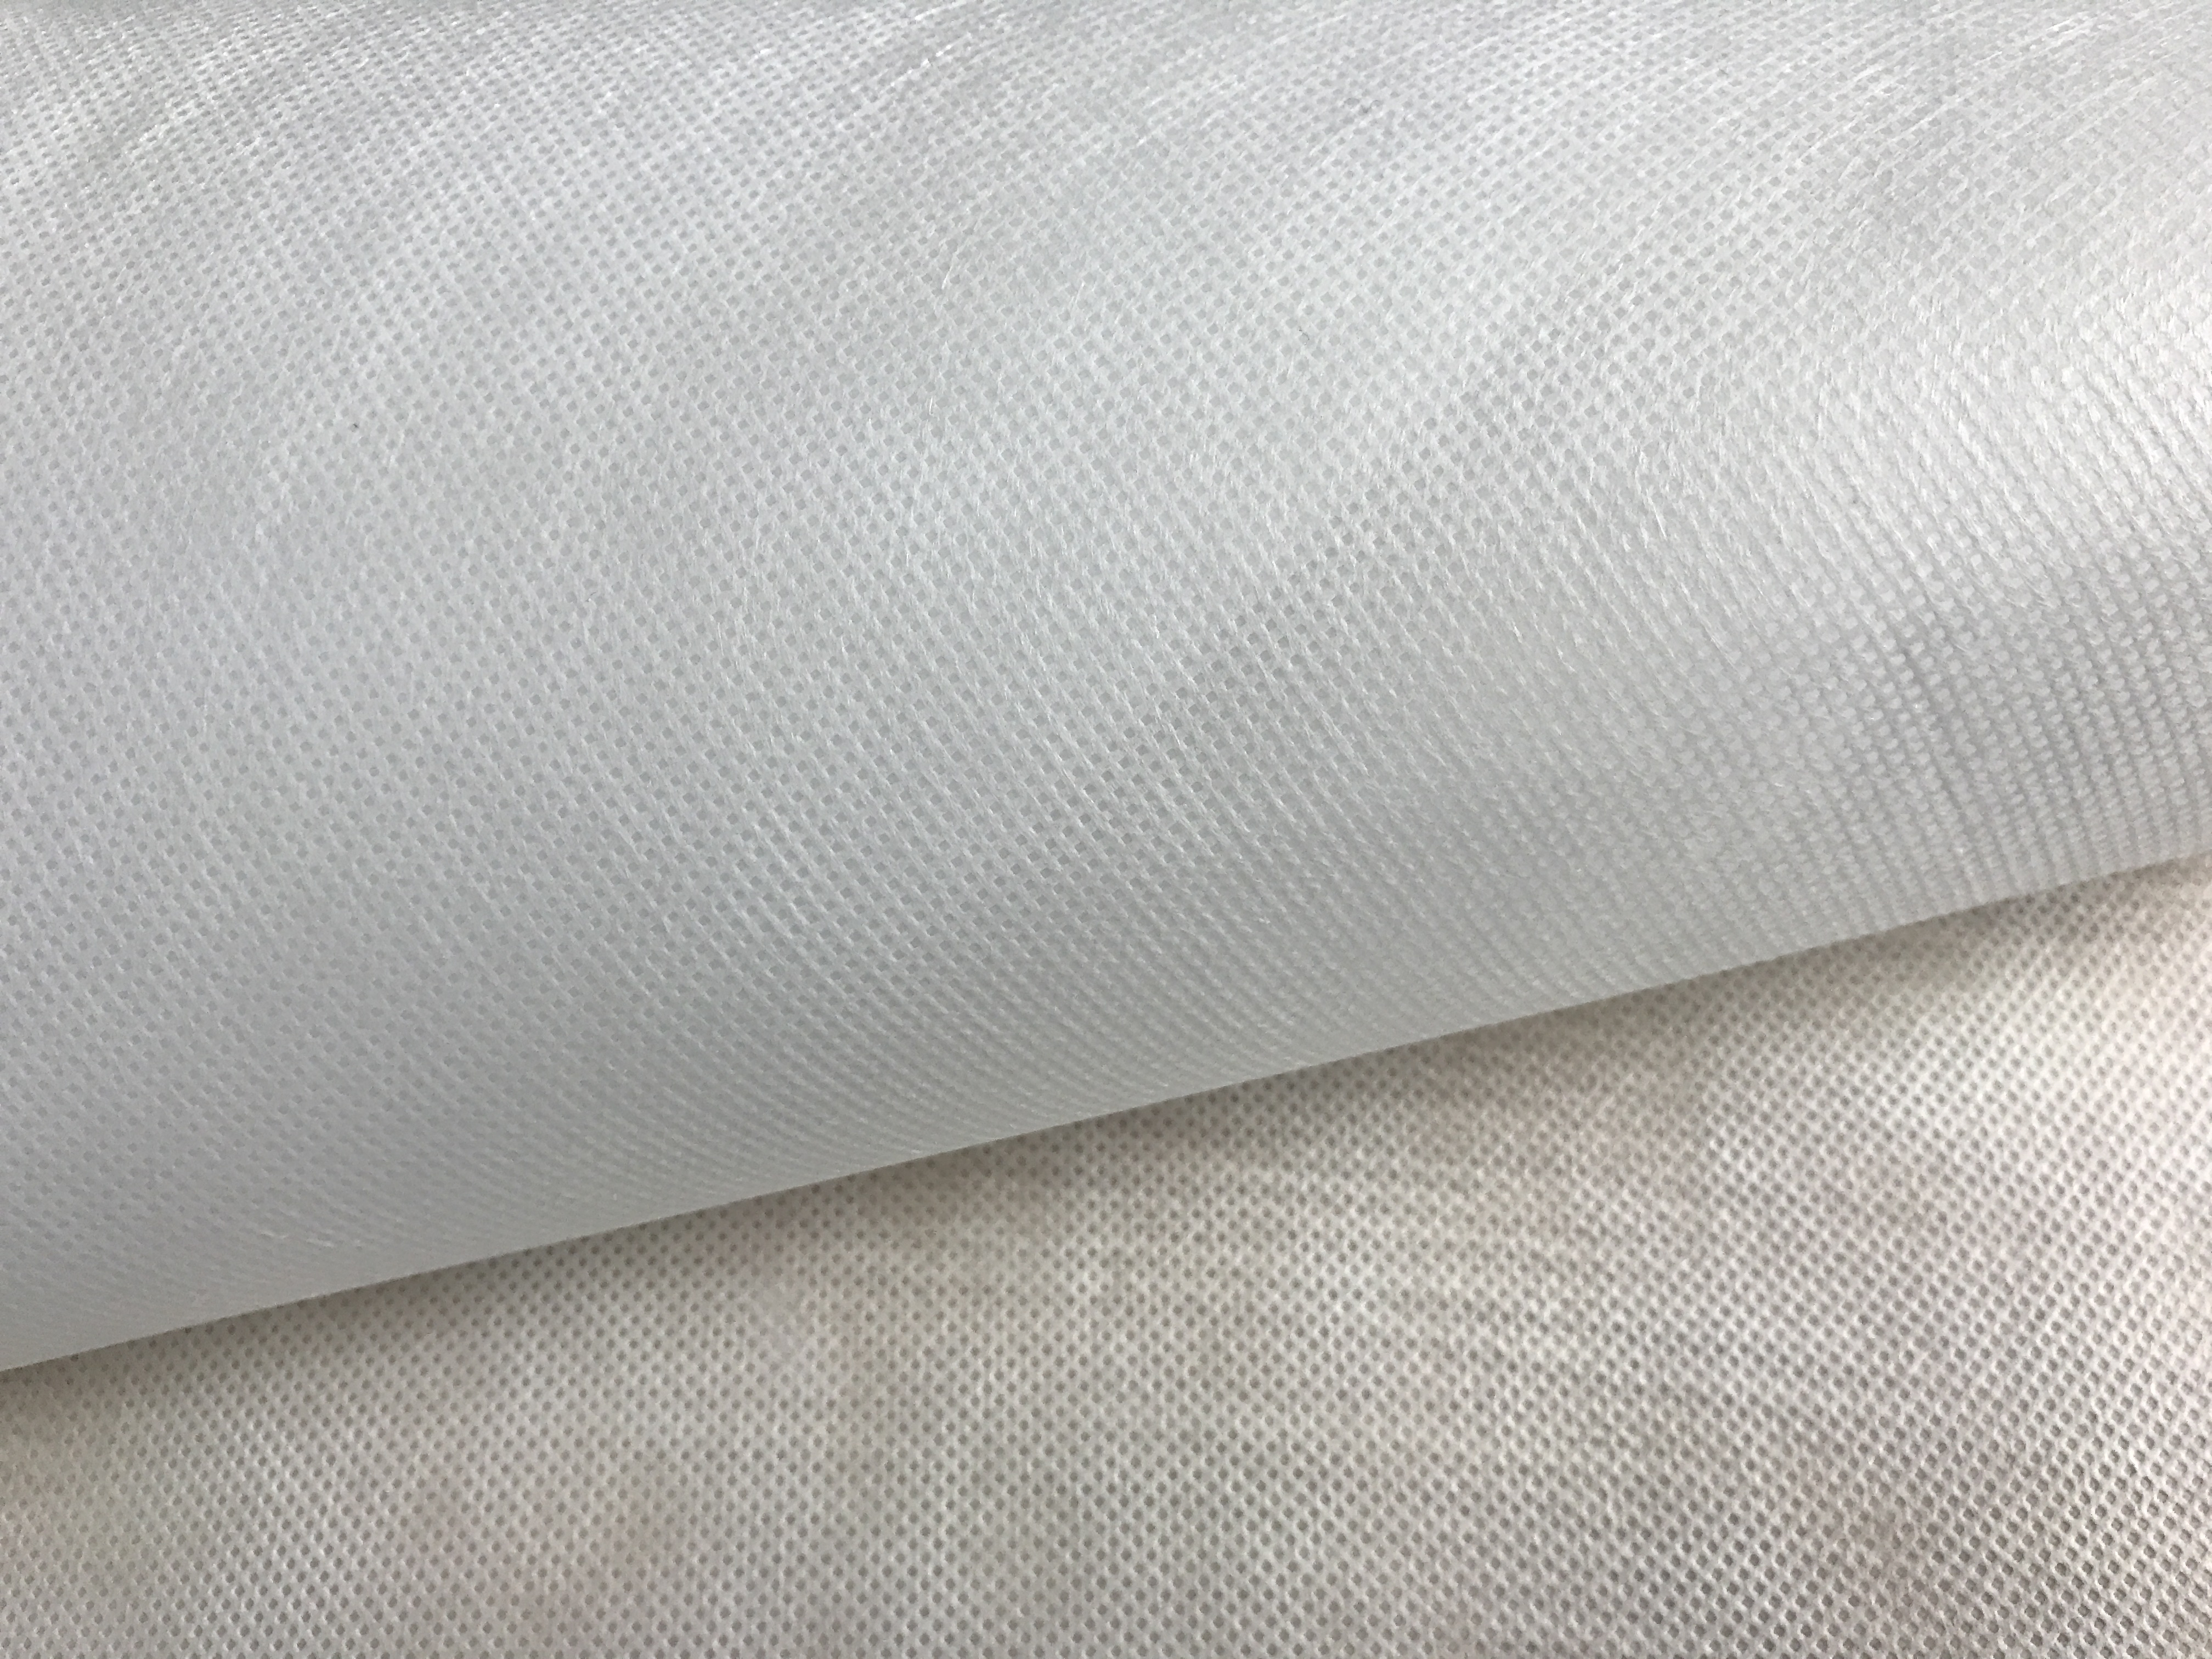 Polyester(PET) Spunbond Nonwoven Fabric